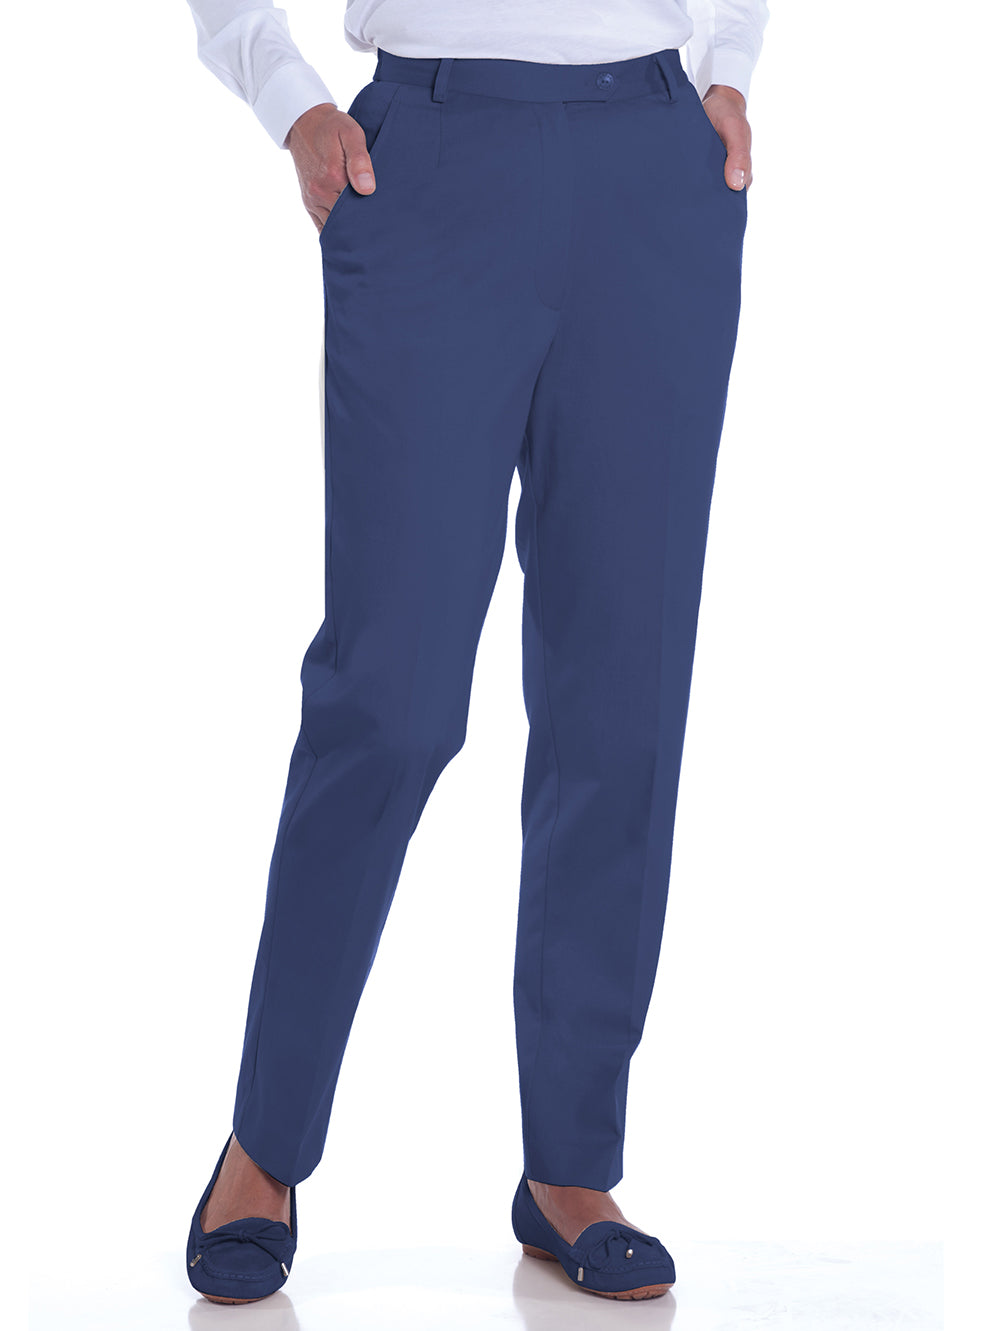 Stretch Twill Flat Front Pants</br>Admiral 480 - Leonlevin